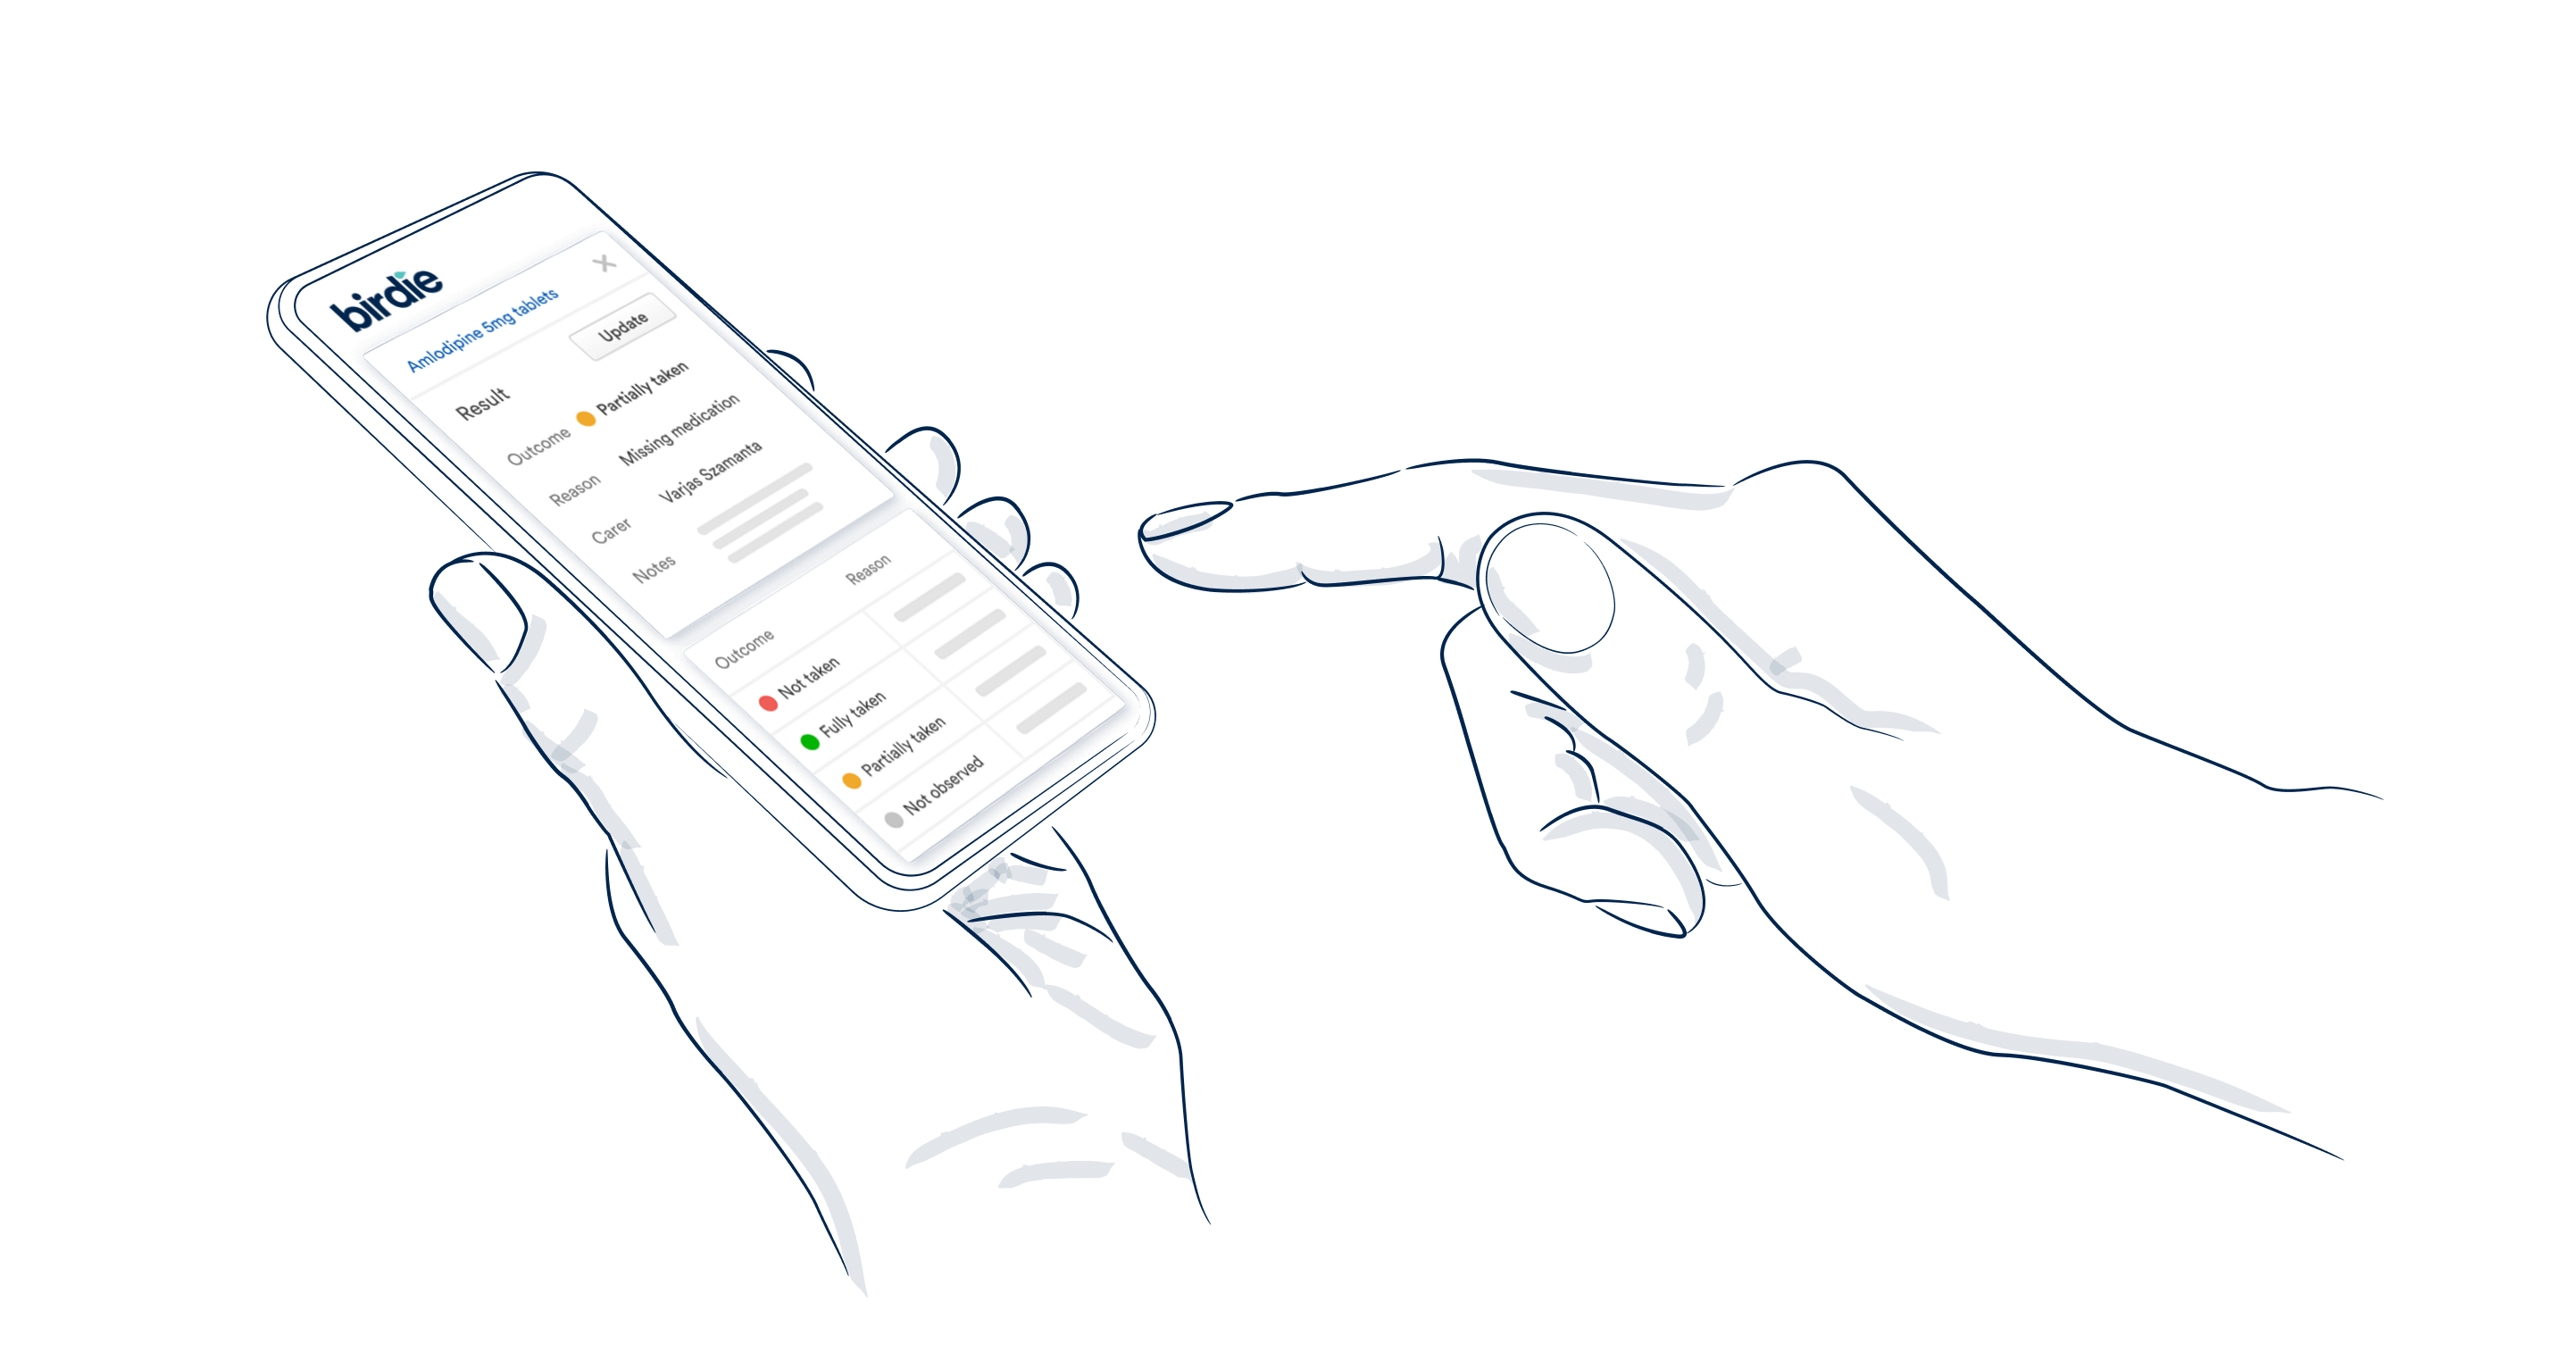 Illustrated hands holding a phone showing the Birdie App on the medication manager screen